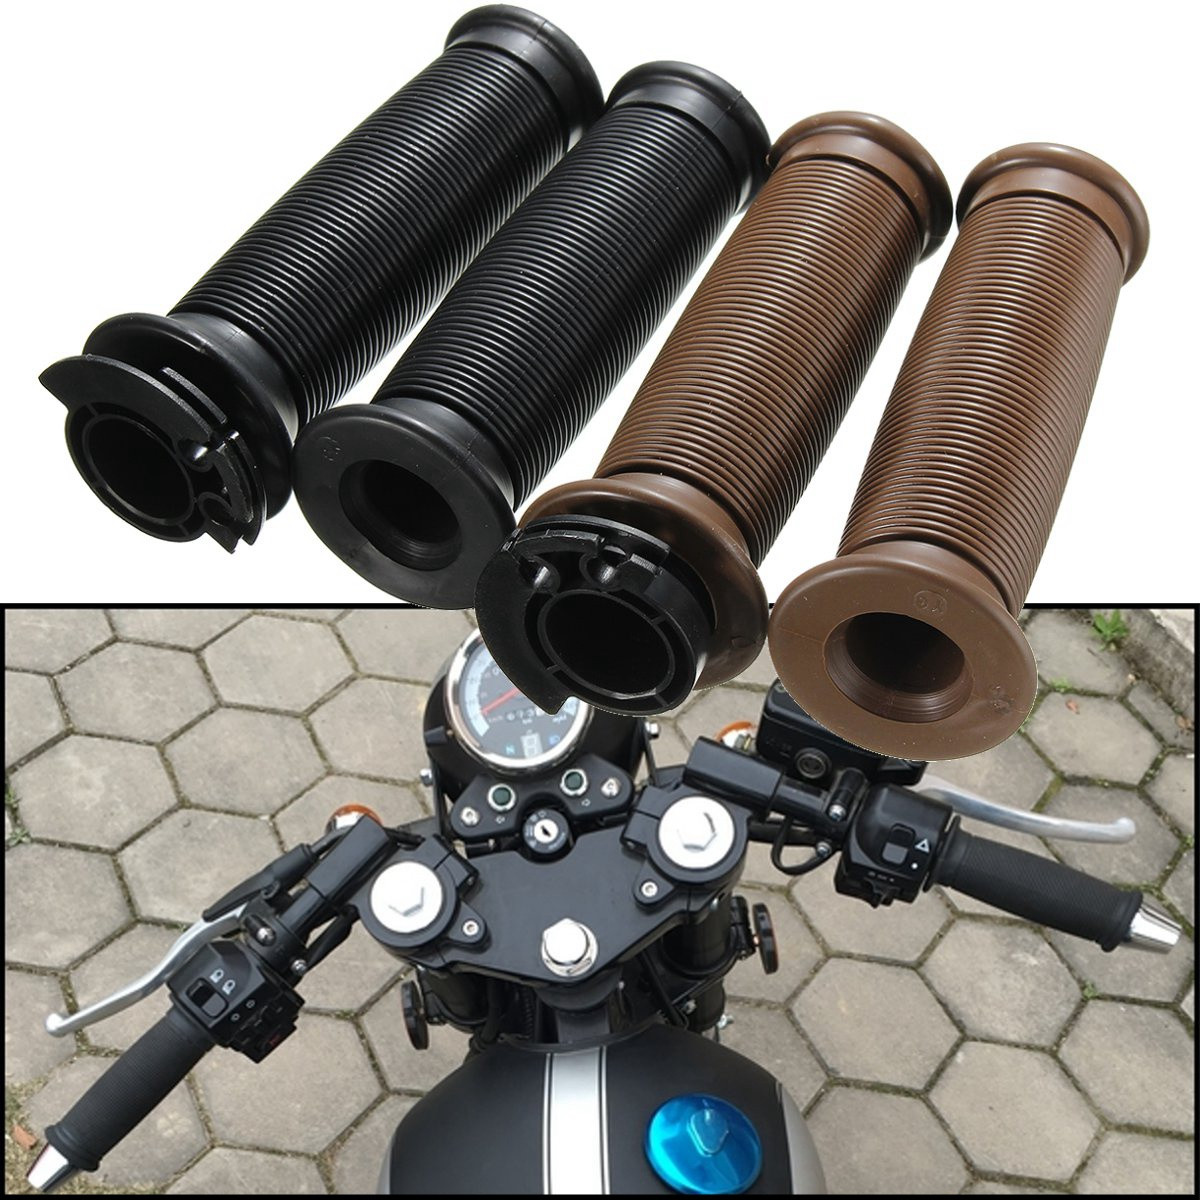 Motorcycle 7/8 Inch Handlebar Grips For Cafe Racer Bobber Clubman Custom